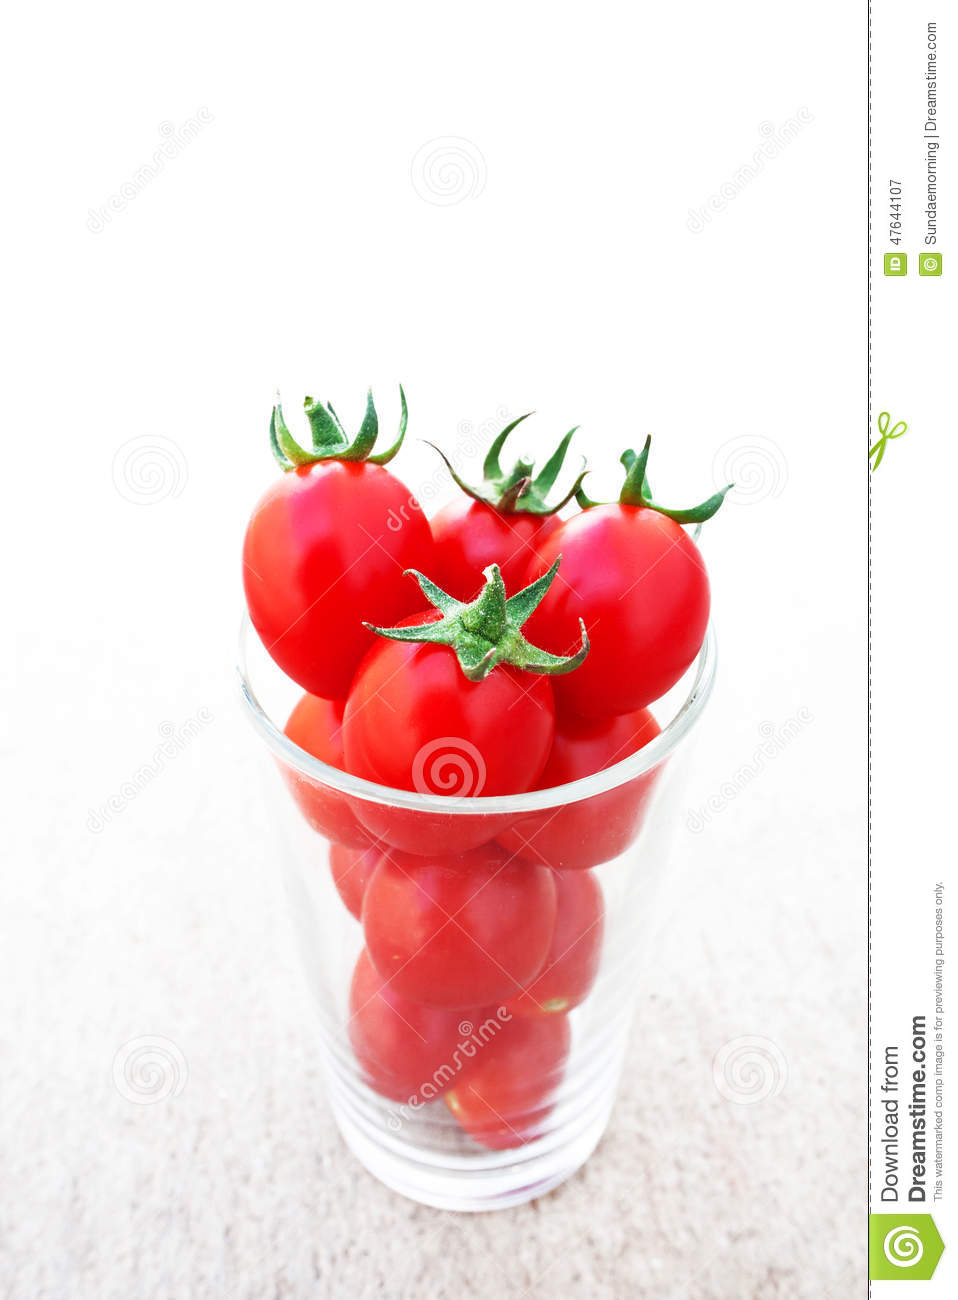 tomato a fruit fruit fresh